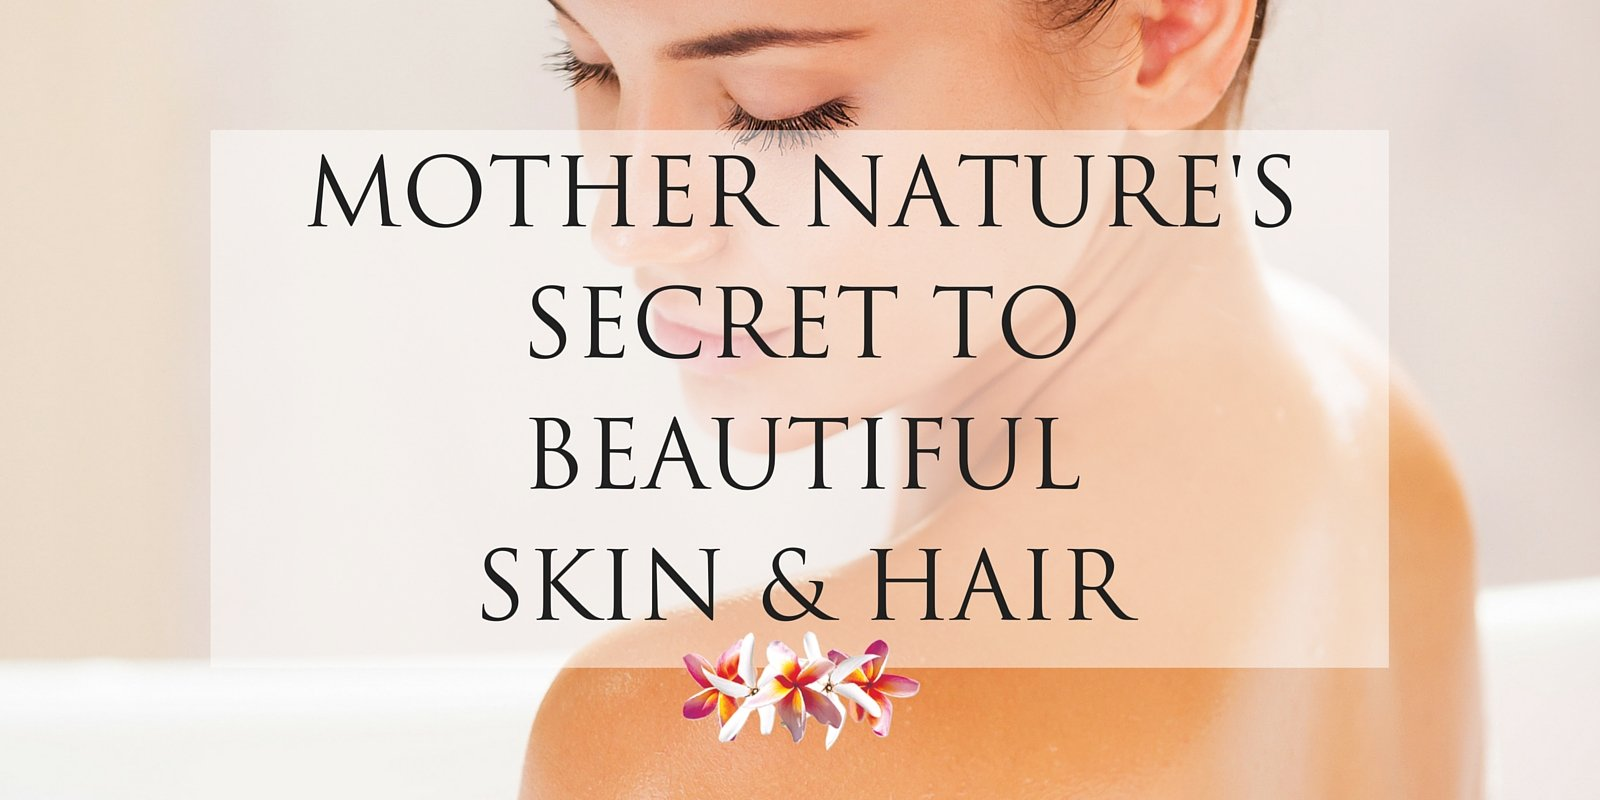 Mother Nature's Secret to Beautiful Skin and Hair